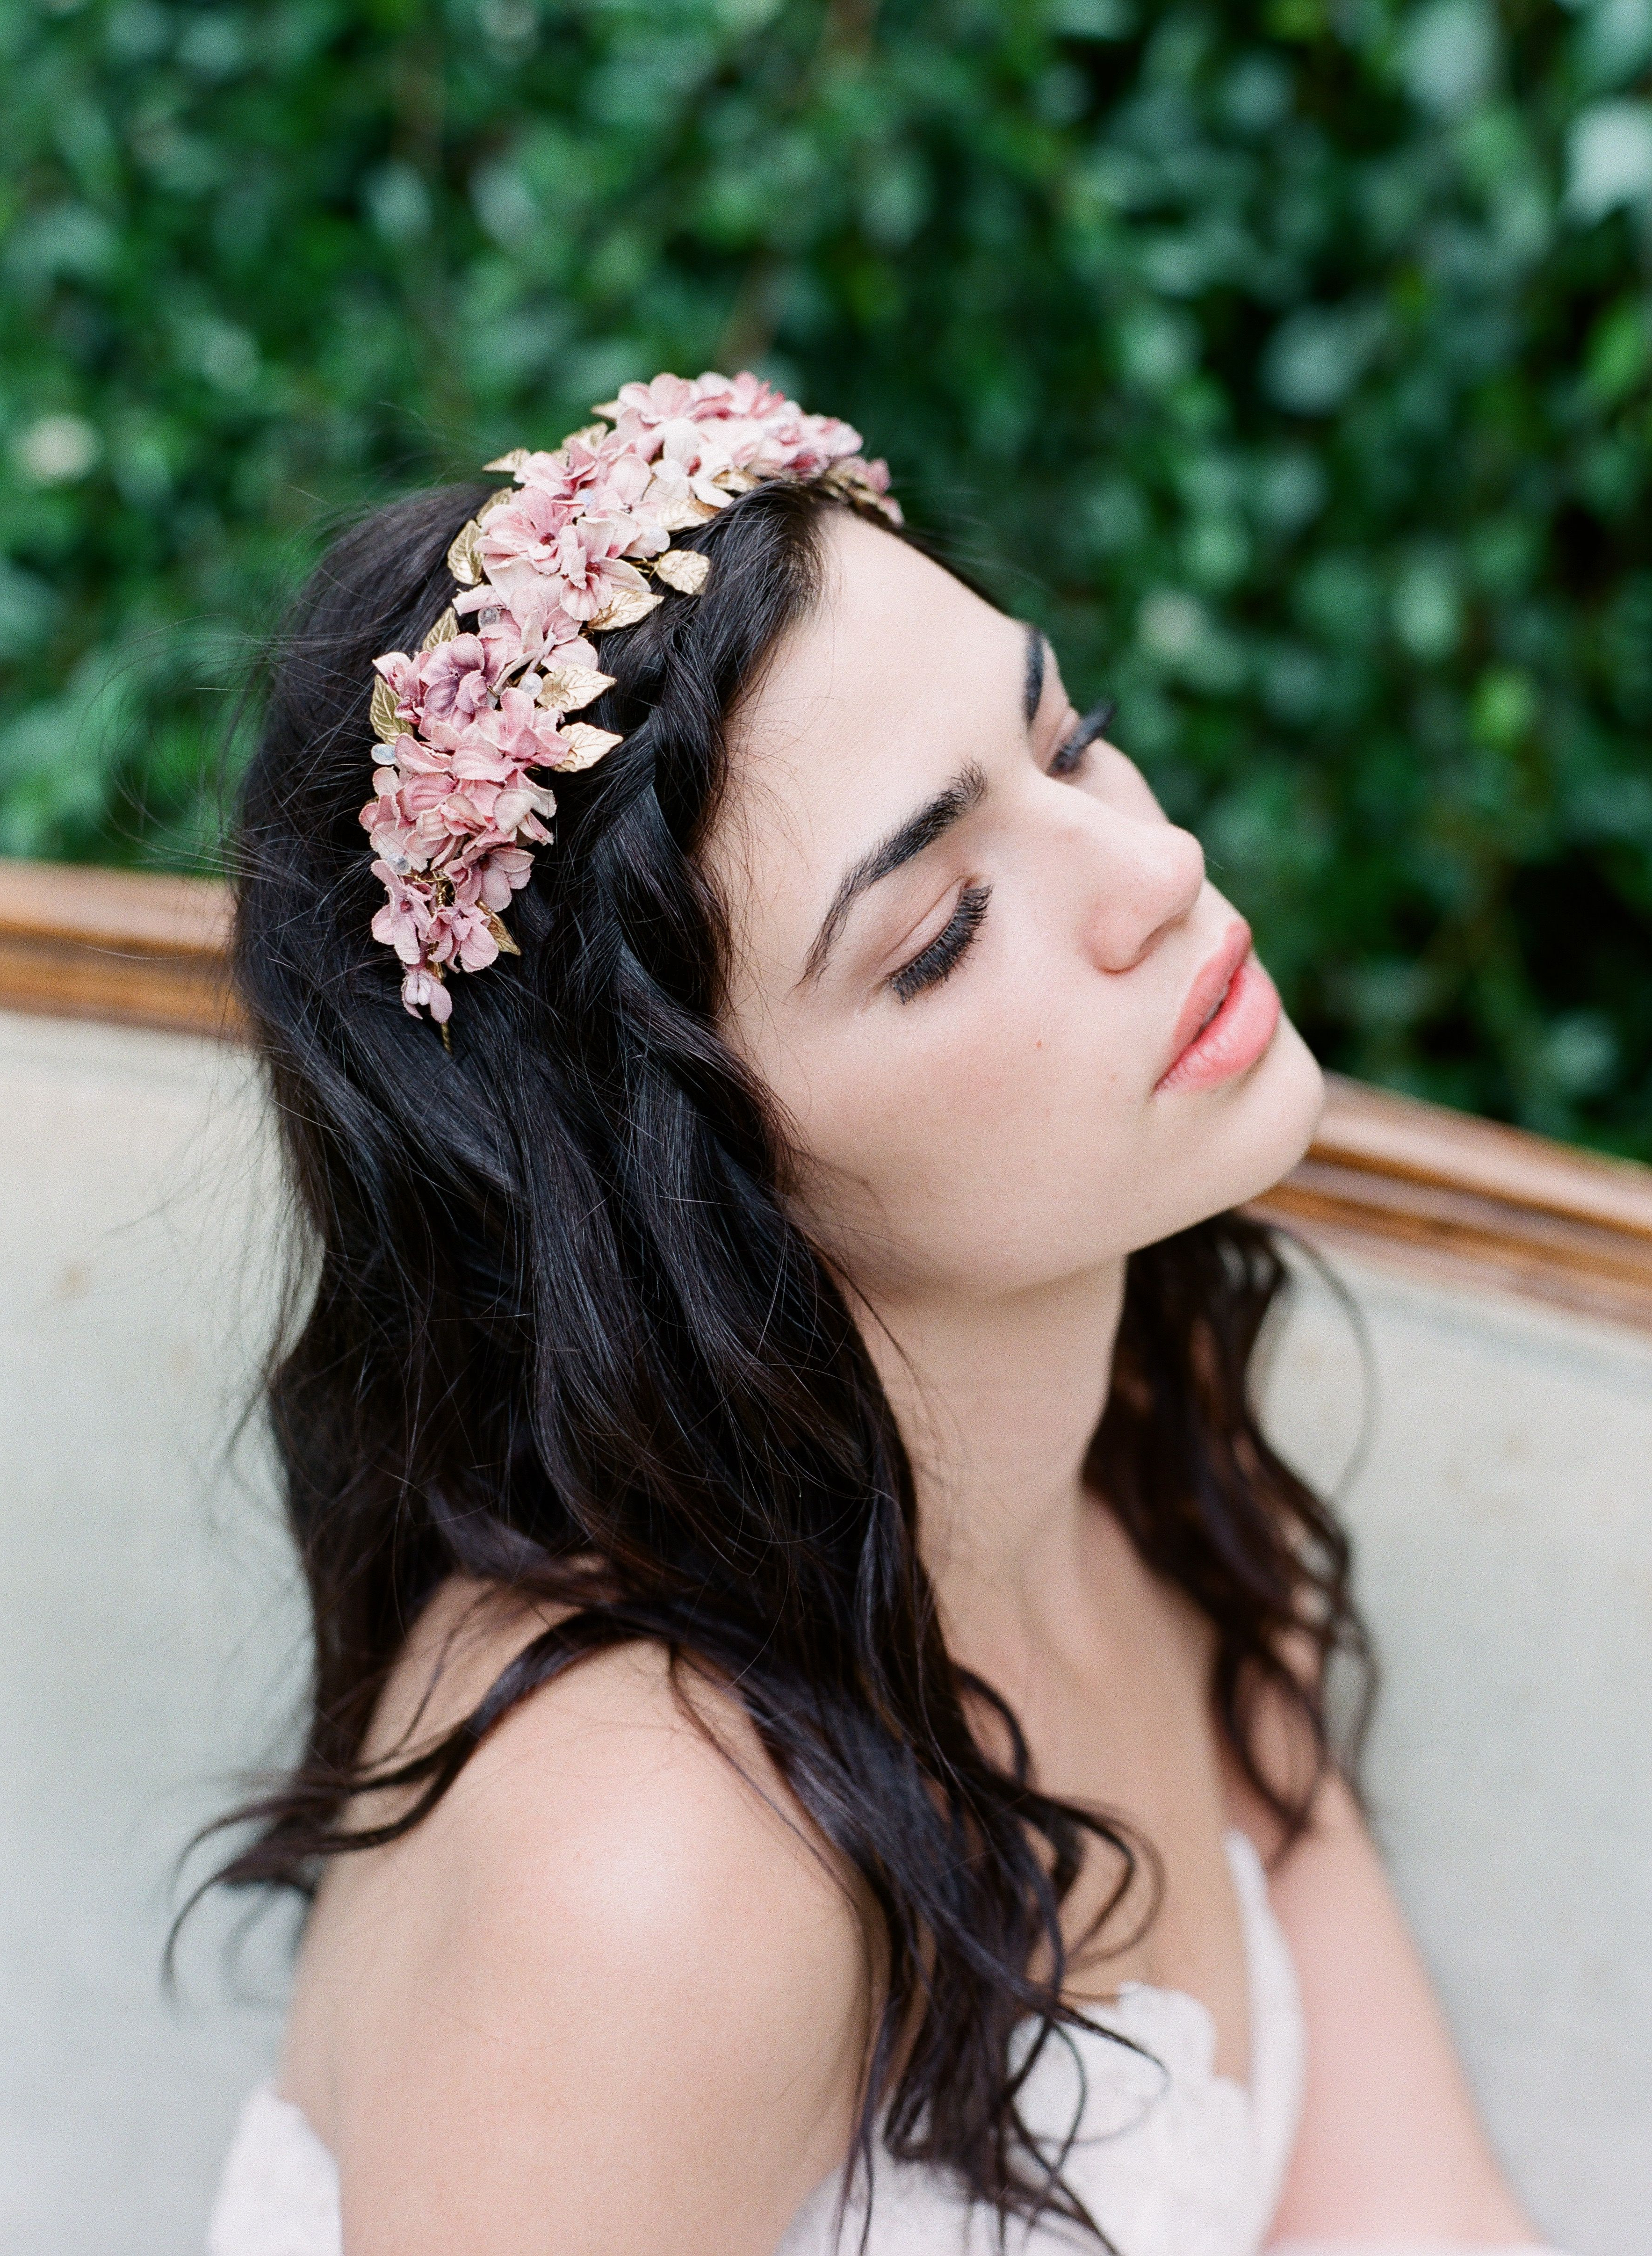 Recent Undone Low Bun Bridal Hairstyles With Floral Headband Pertaining To Half Up Half Down Bridal Style Wedding Hairstyle With Flower Crown (Gallery 8 of 20)